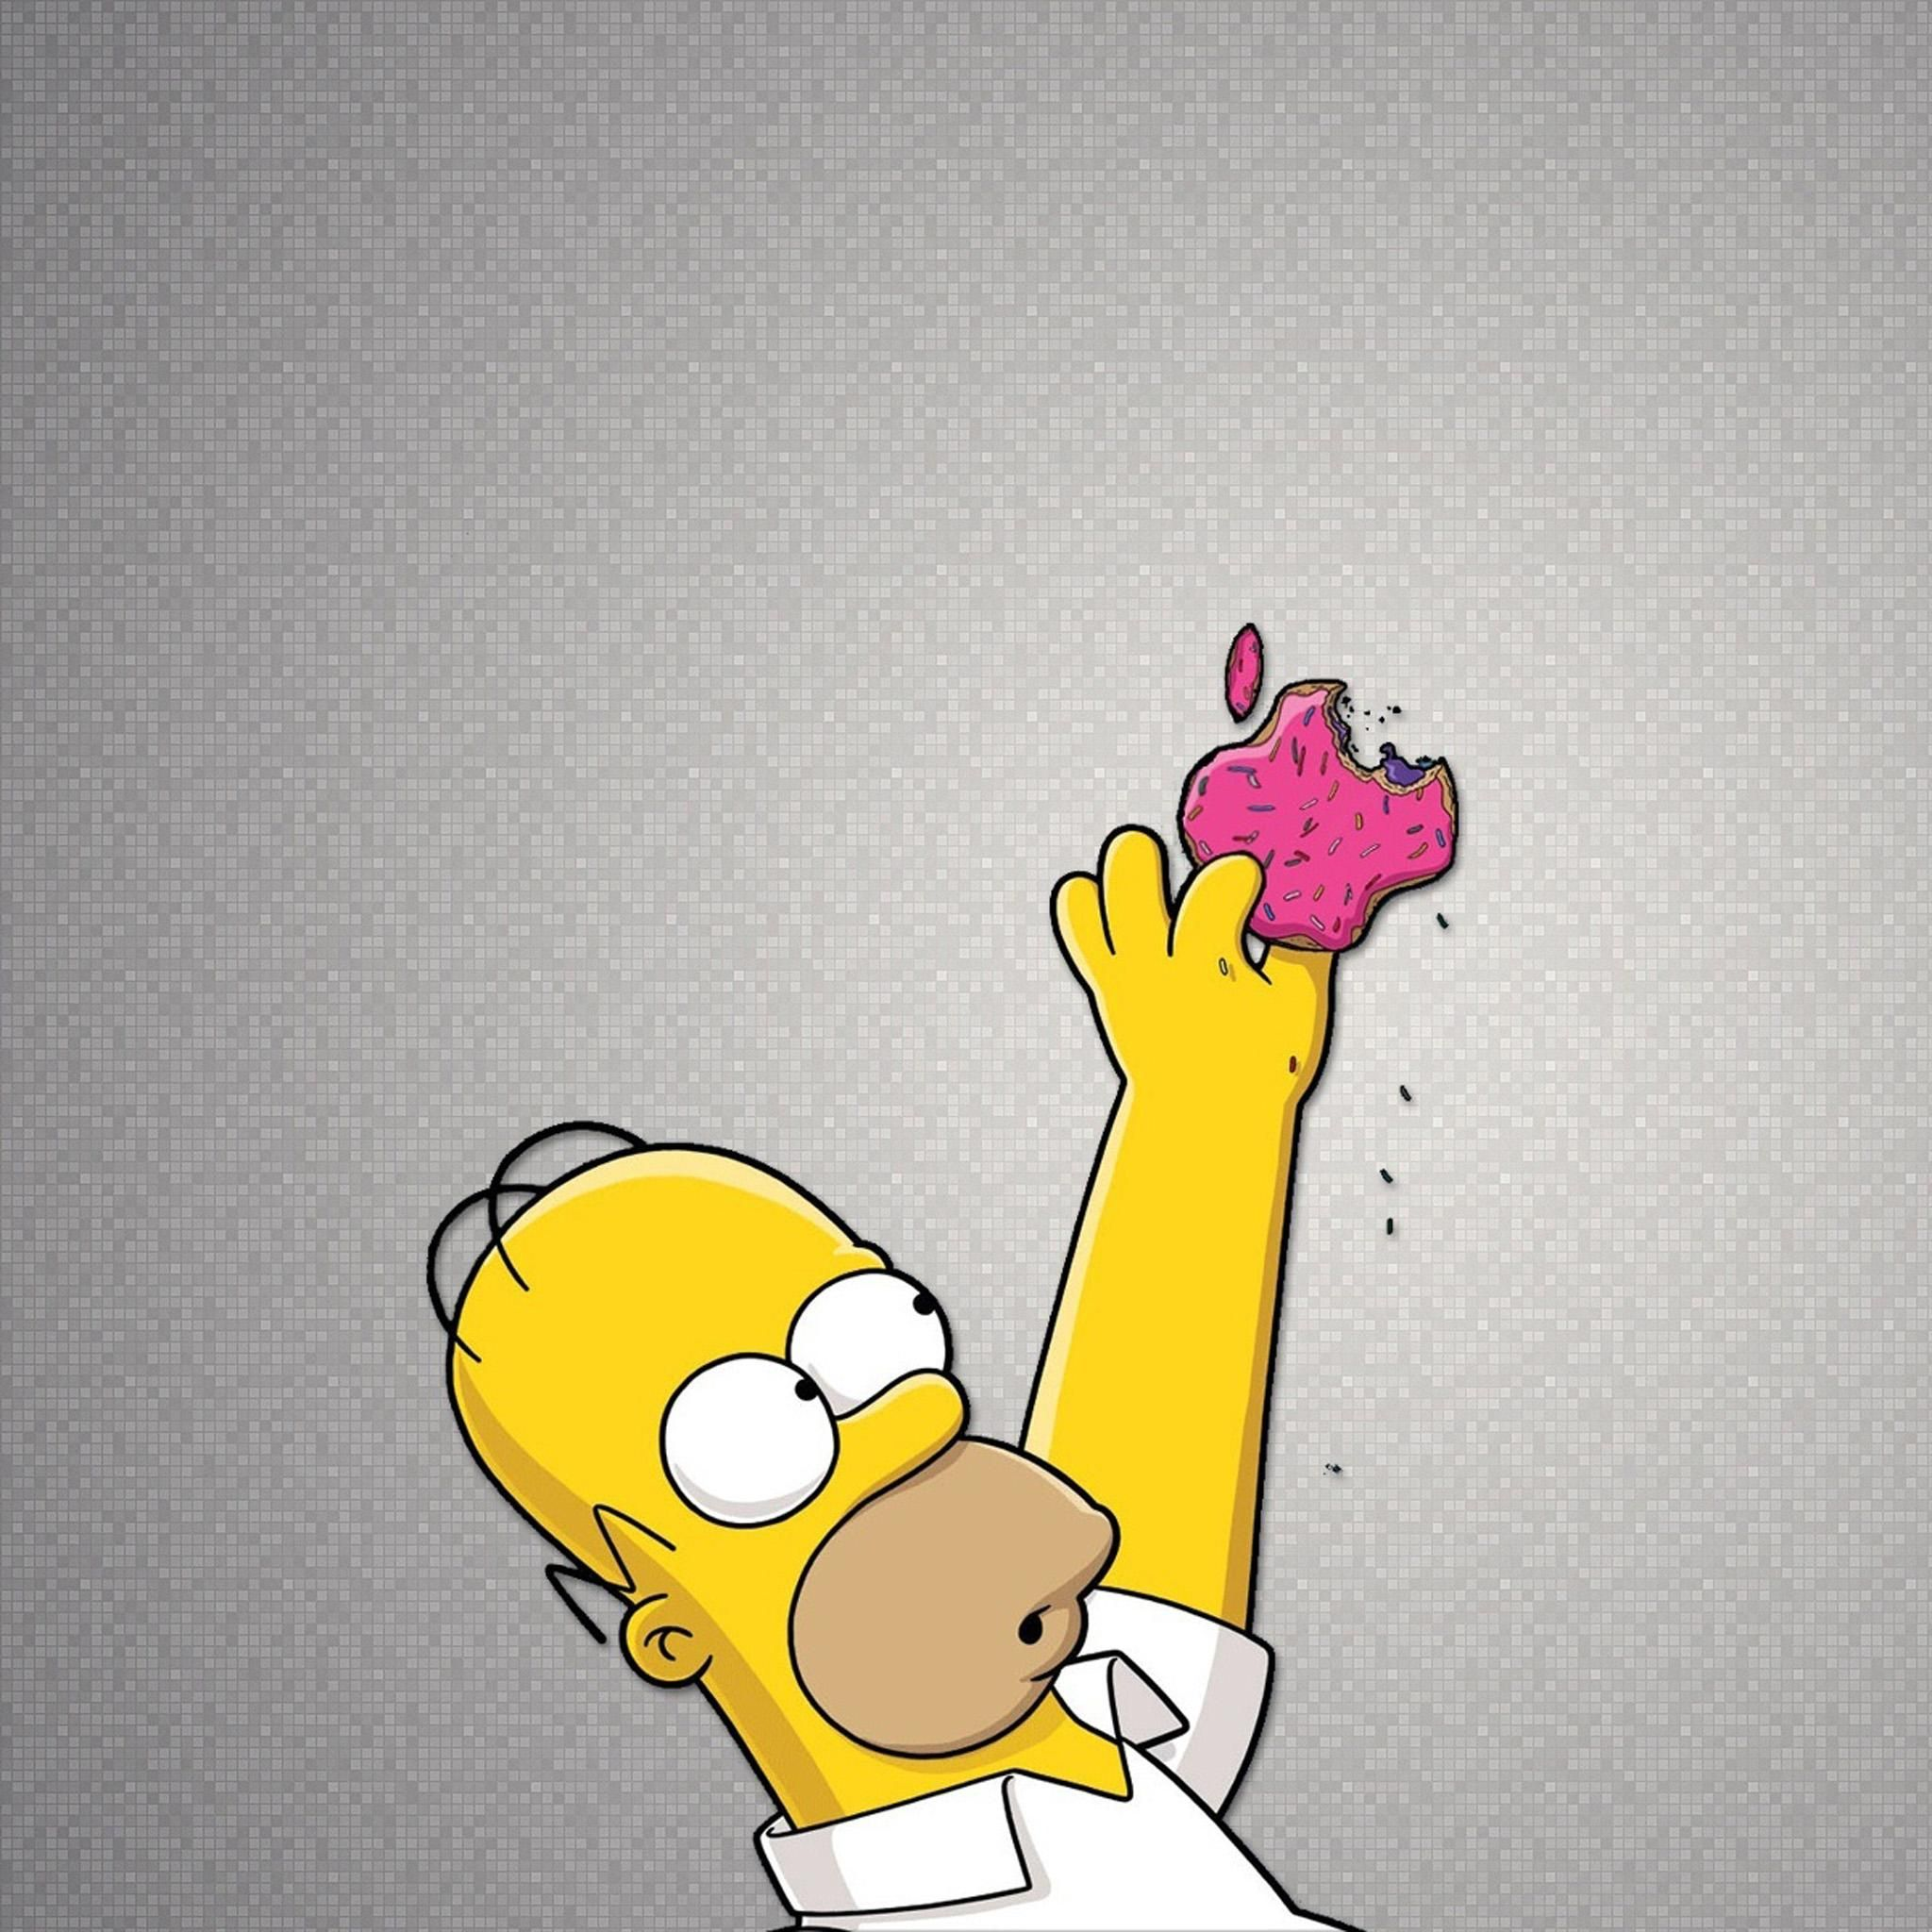 Hommer Simpson eating the Apple donut! Get it for your